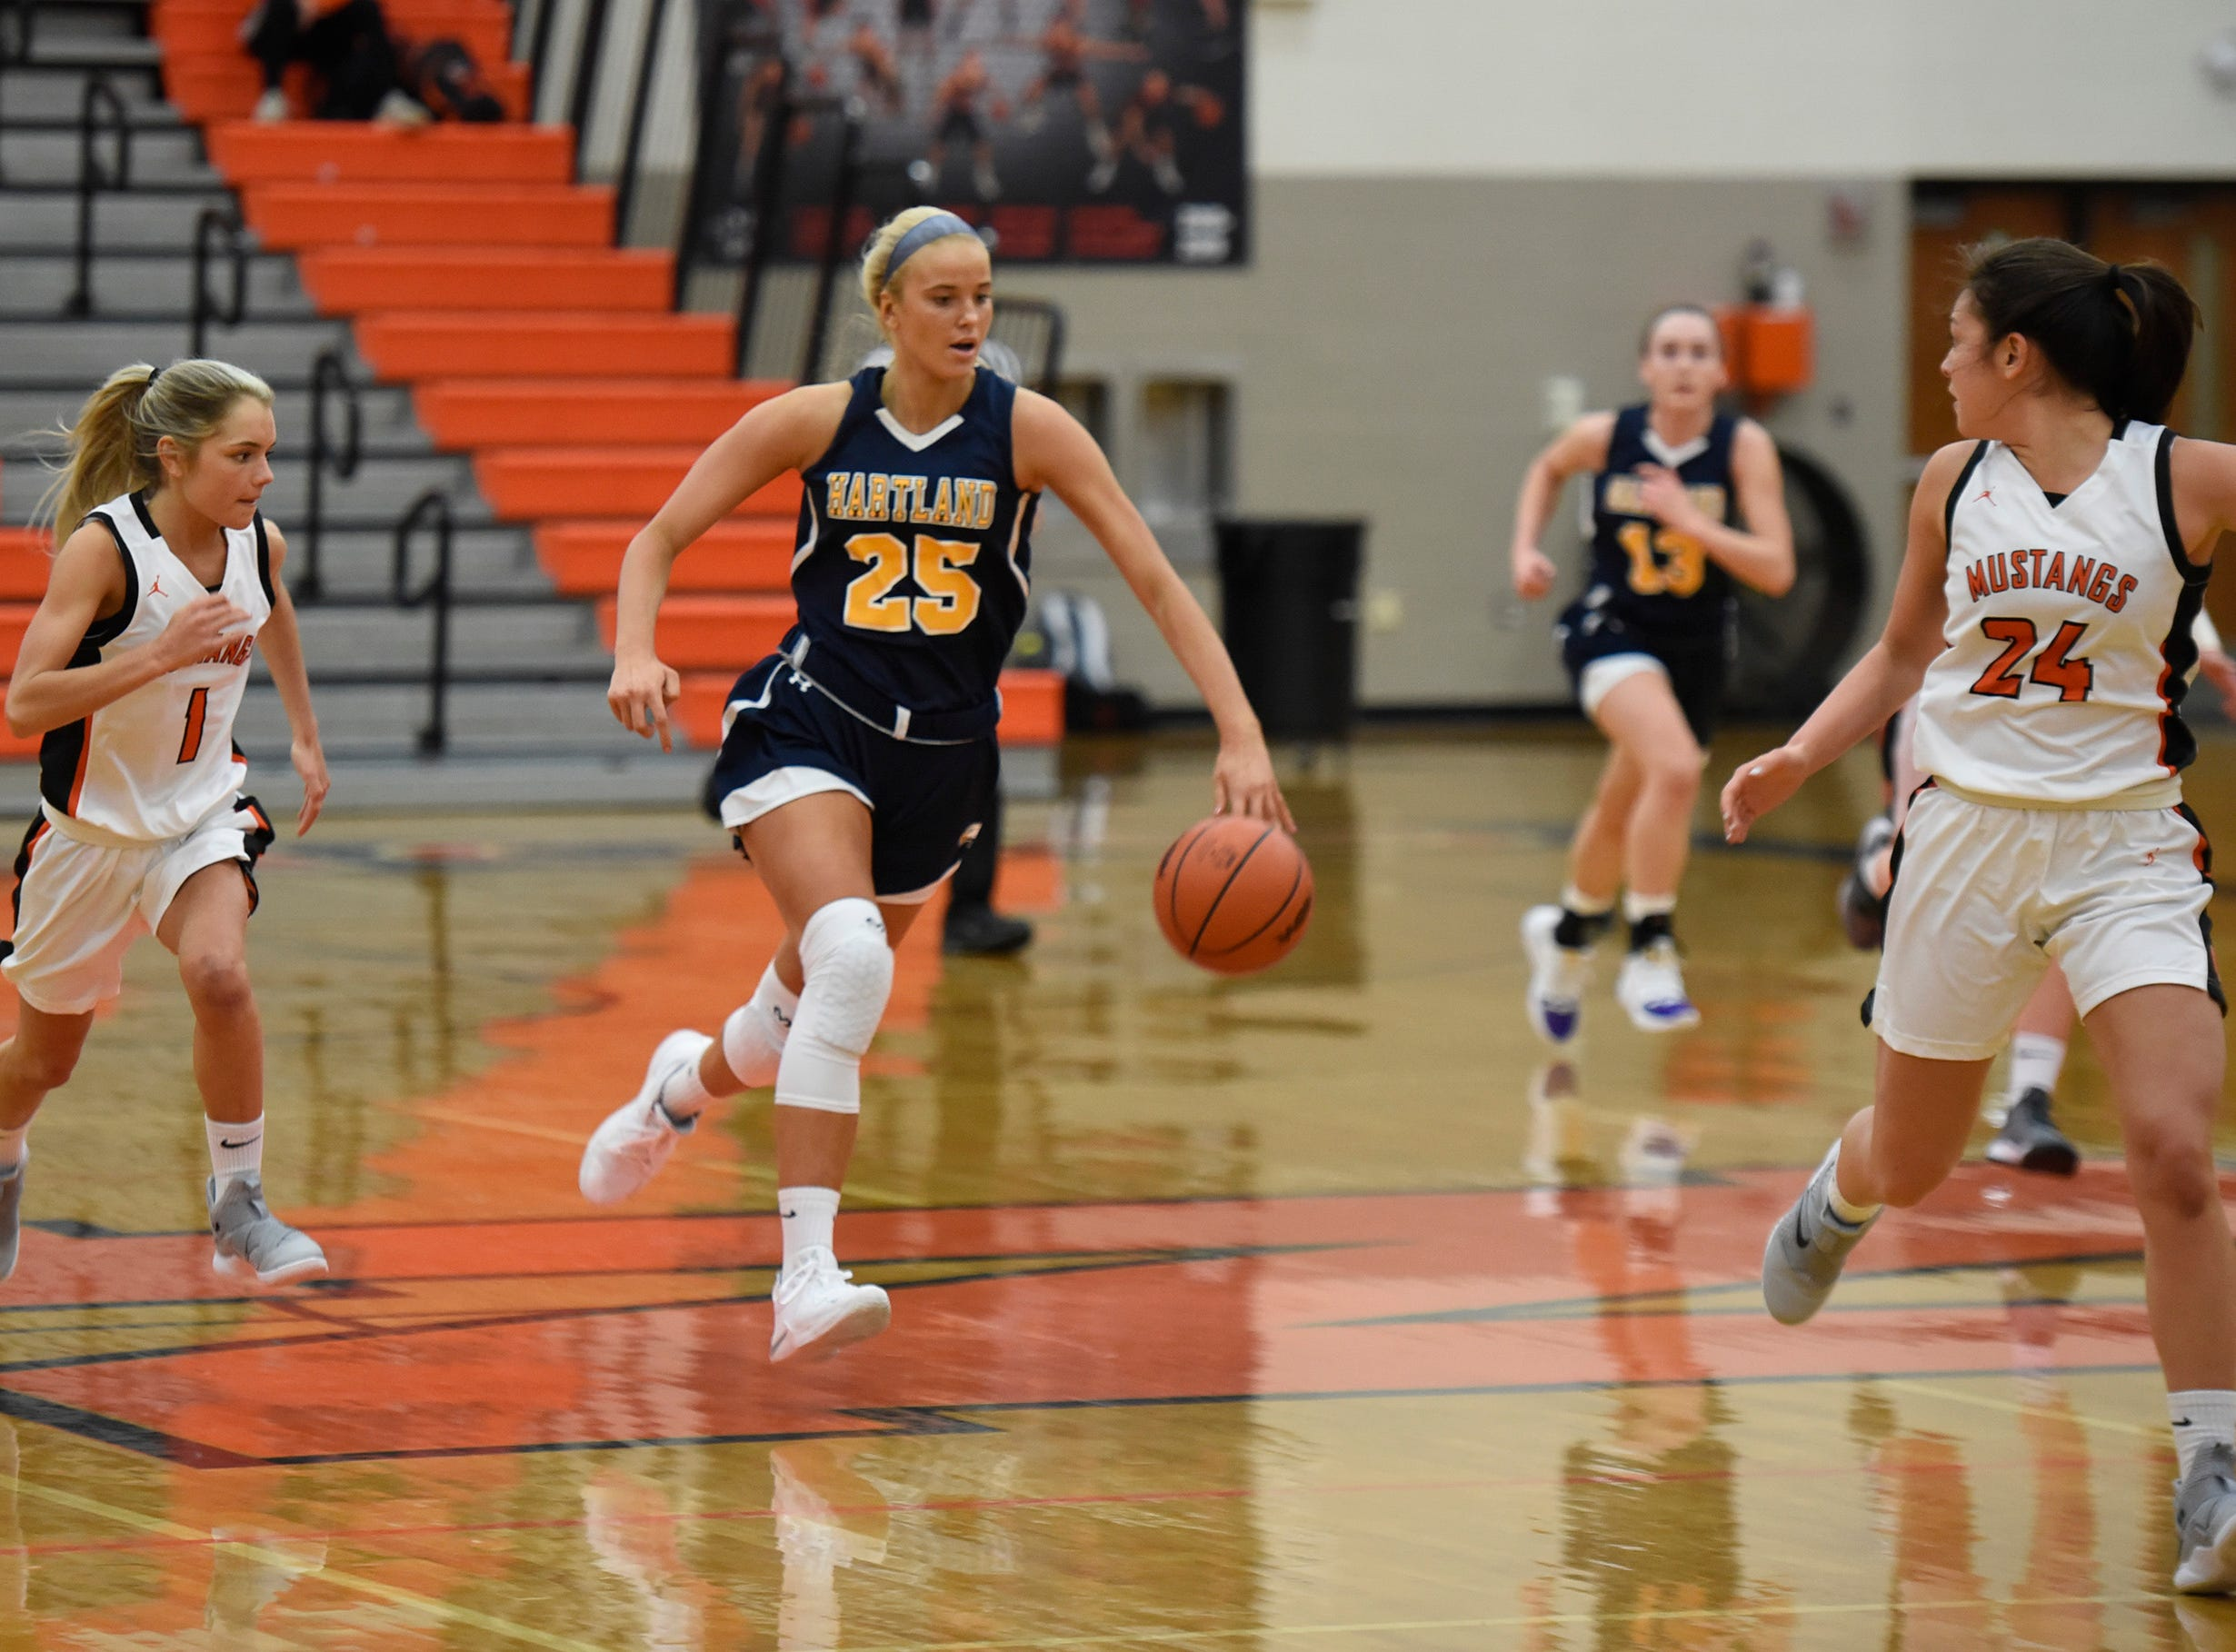 Hartland's Whitney Sollom (25) brings the ball up court with Northville's Jenna Lauderback (1) and Nicole Martin (24) during a KLAA match up between the Mustangs and Eagles at Northville Jan. 8, 2019